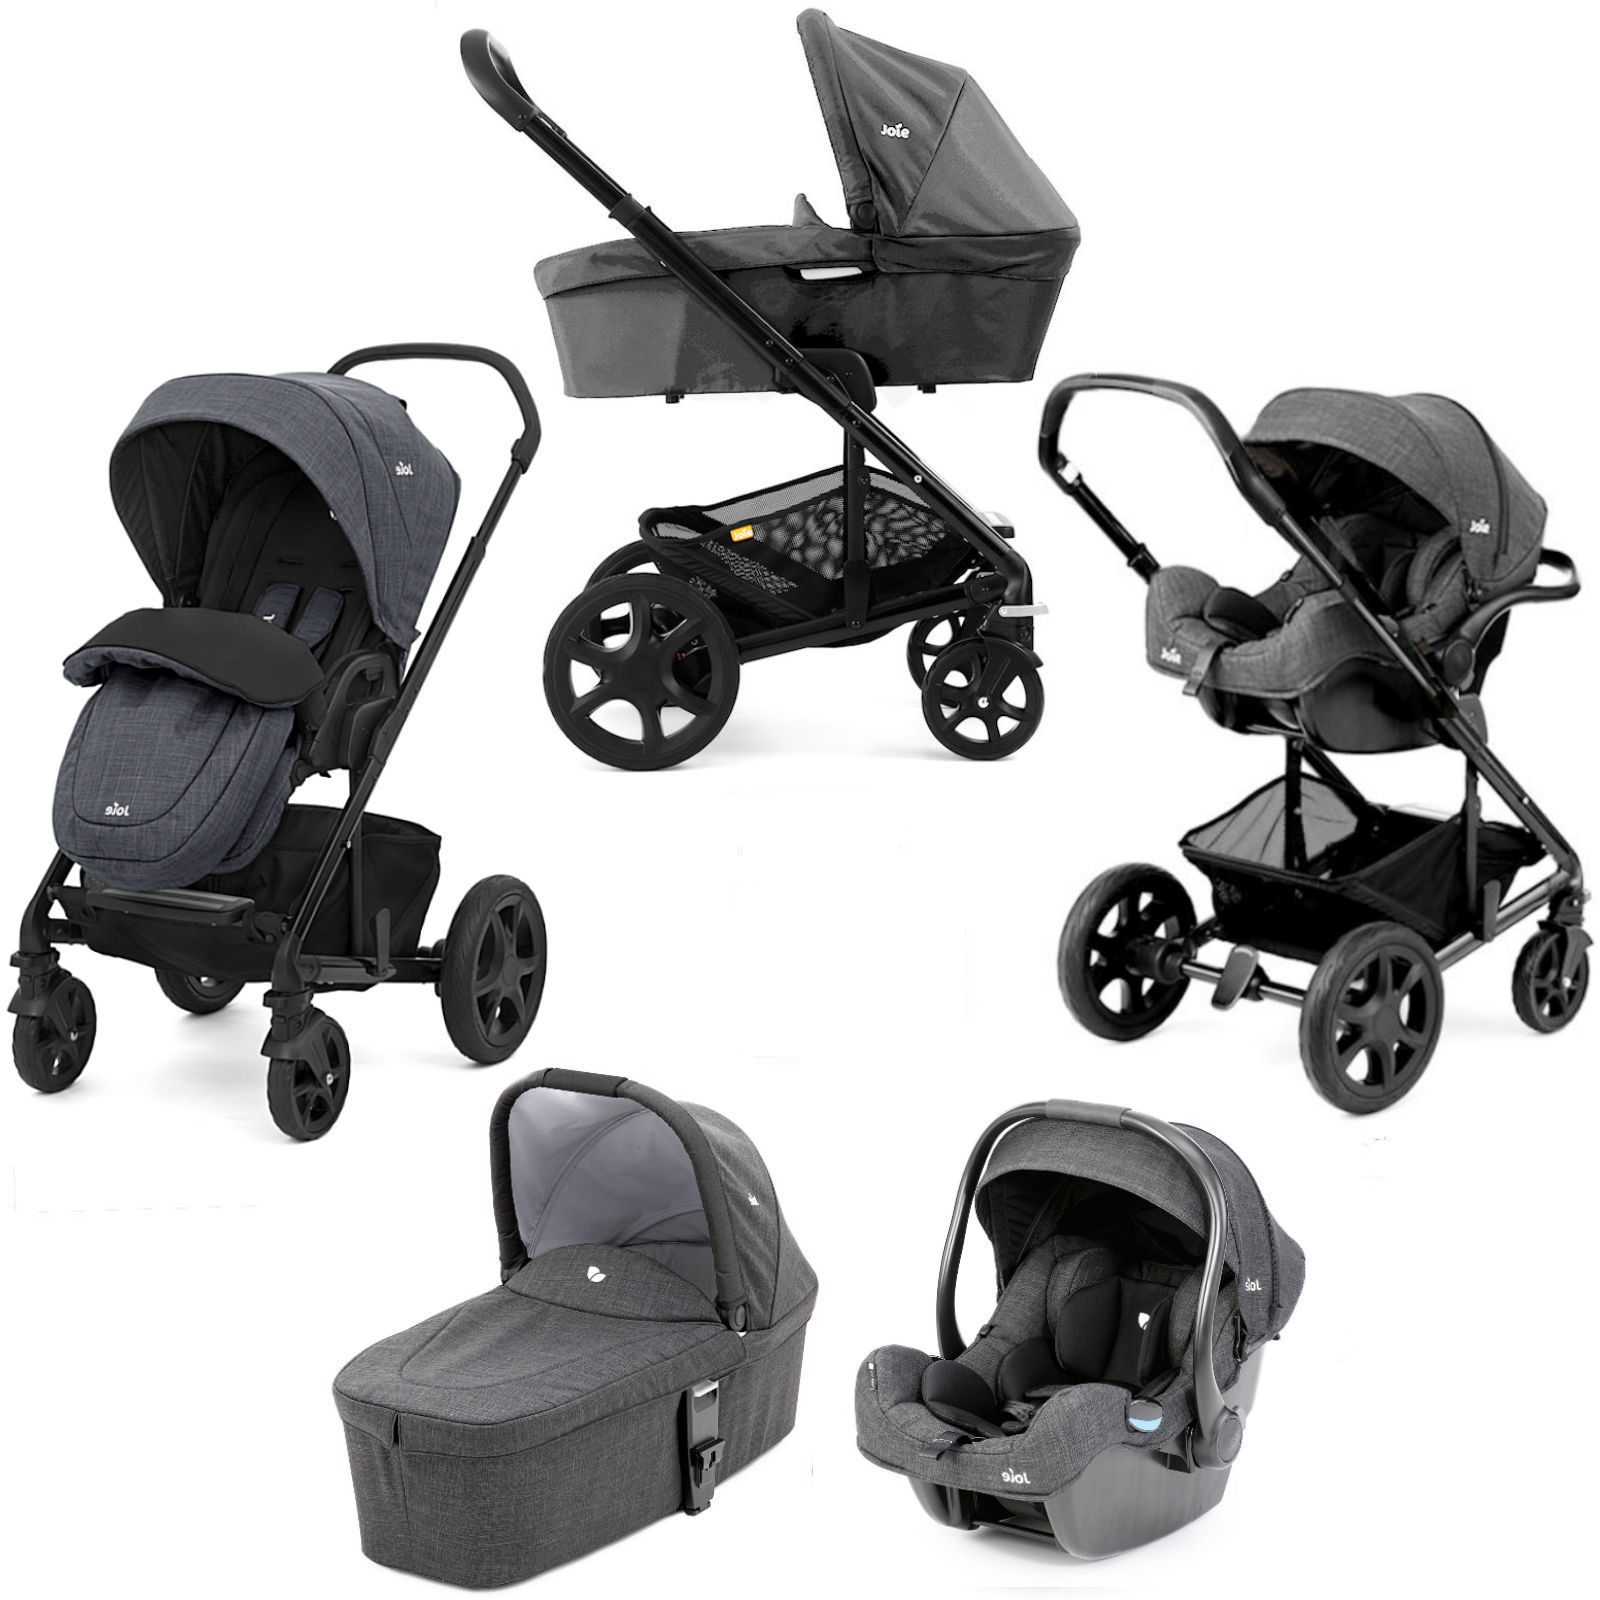 Travel System Joie Chrome Joie Chrome Dlx I Gemm Travel System Carrycot Inc Footmuff Pavement